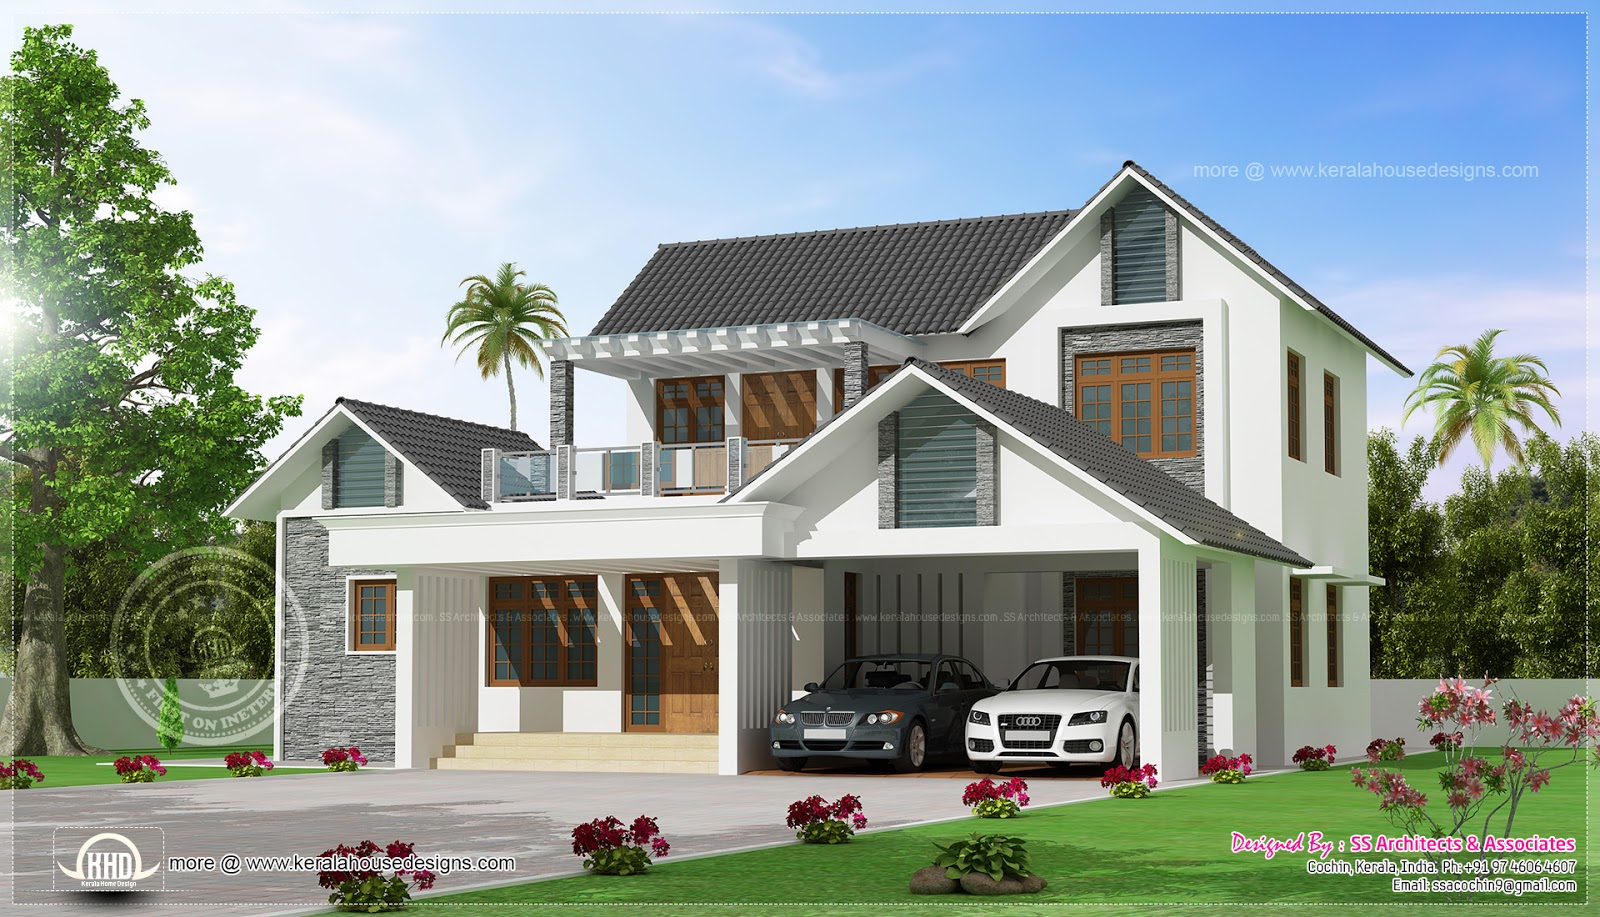 Awesome modern villa exterior elevation kerala home for Awesome house blueprints